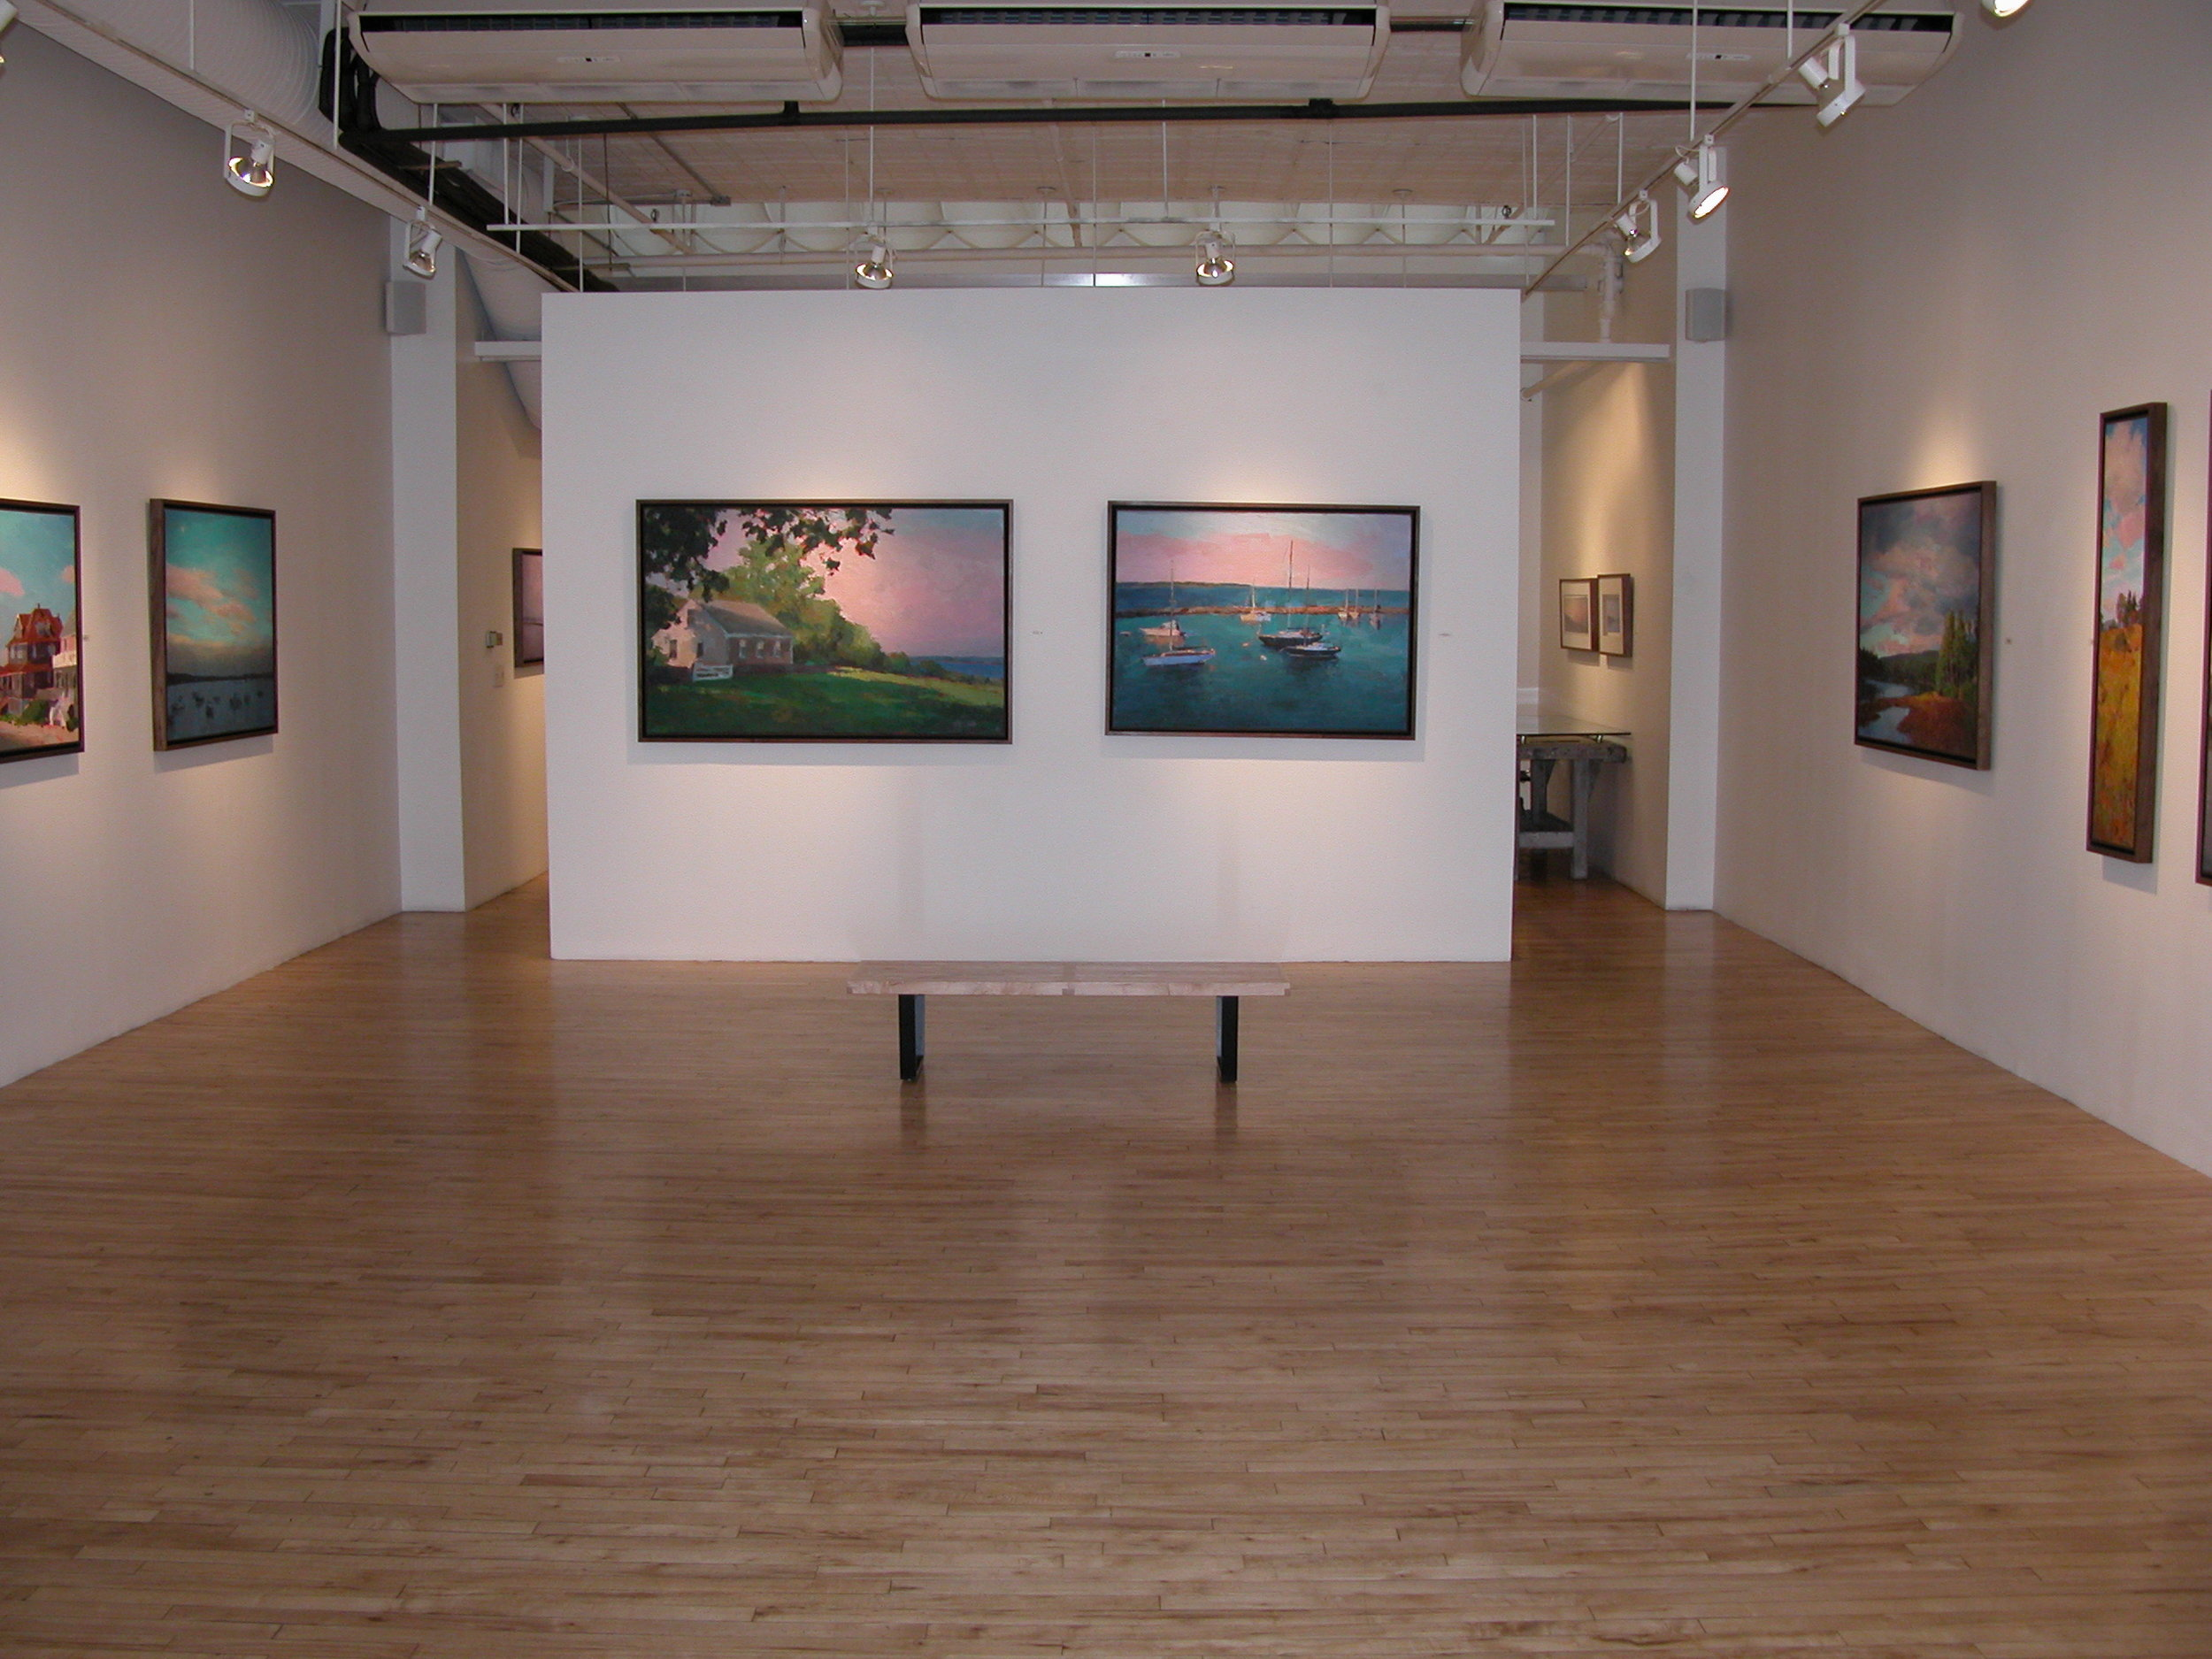 New York Exhibition, 2005